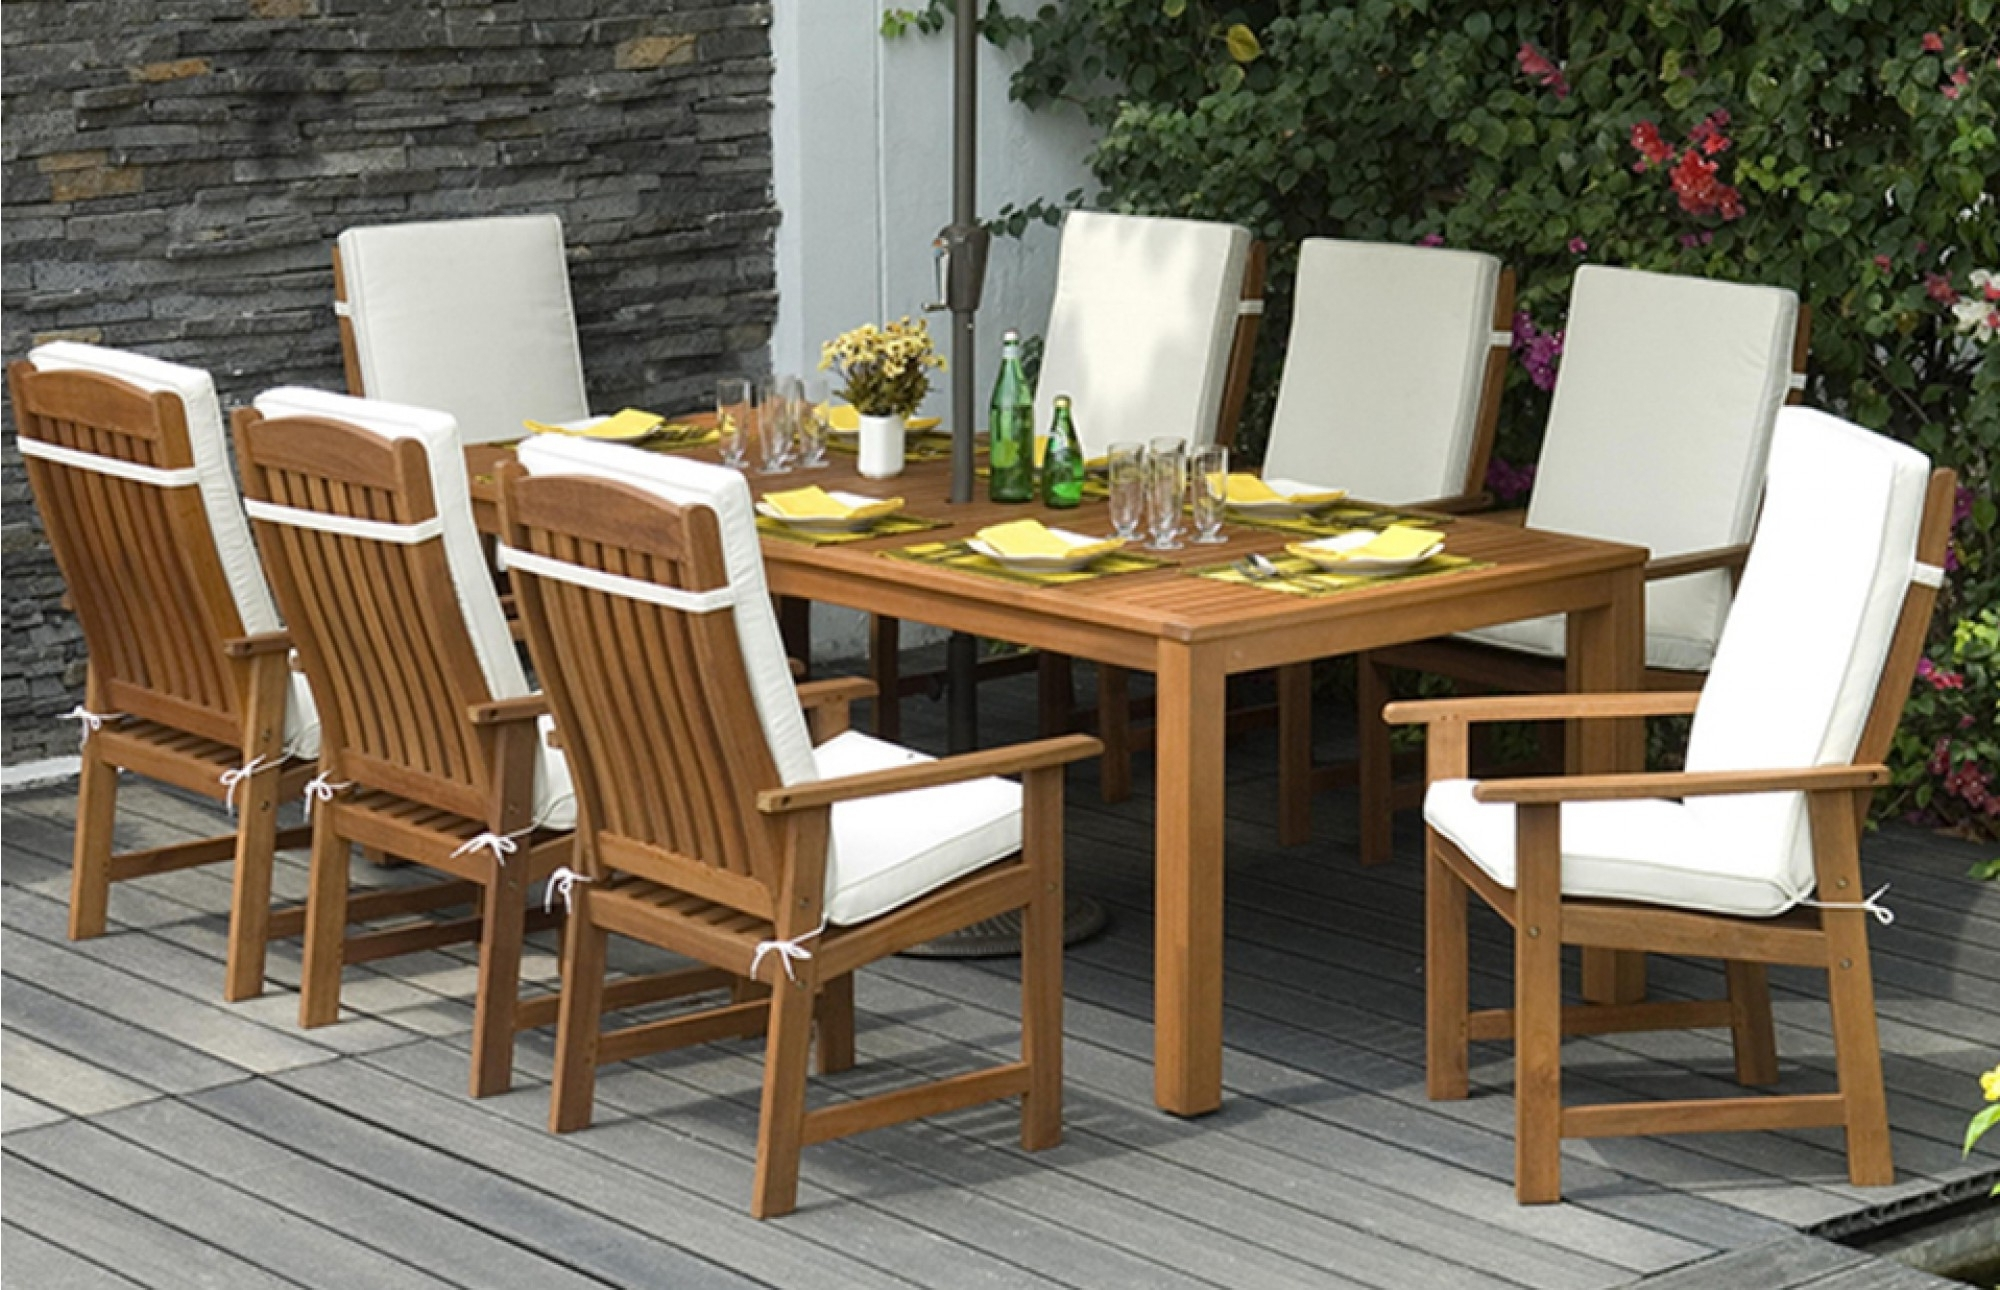 Dining Table Sets 8 Seater • Table Setting Ideas In Most Popular 8 Seater Dining Tables And Chairs (View 13 of 25)